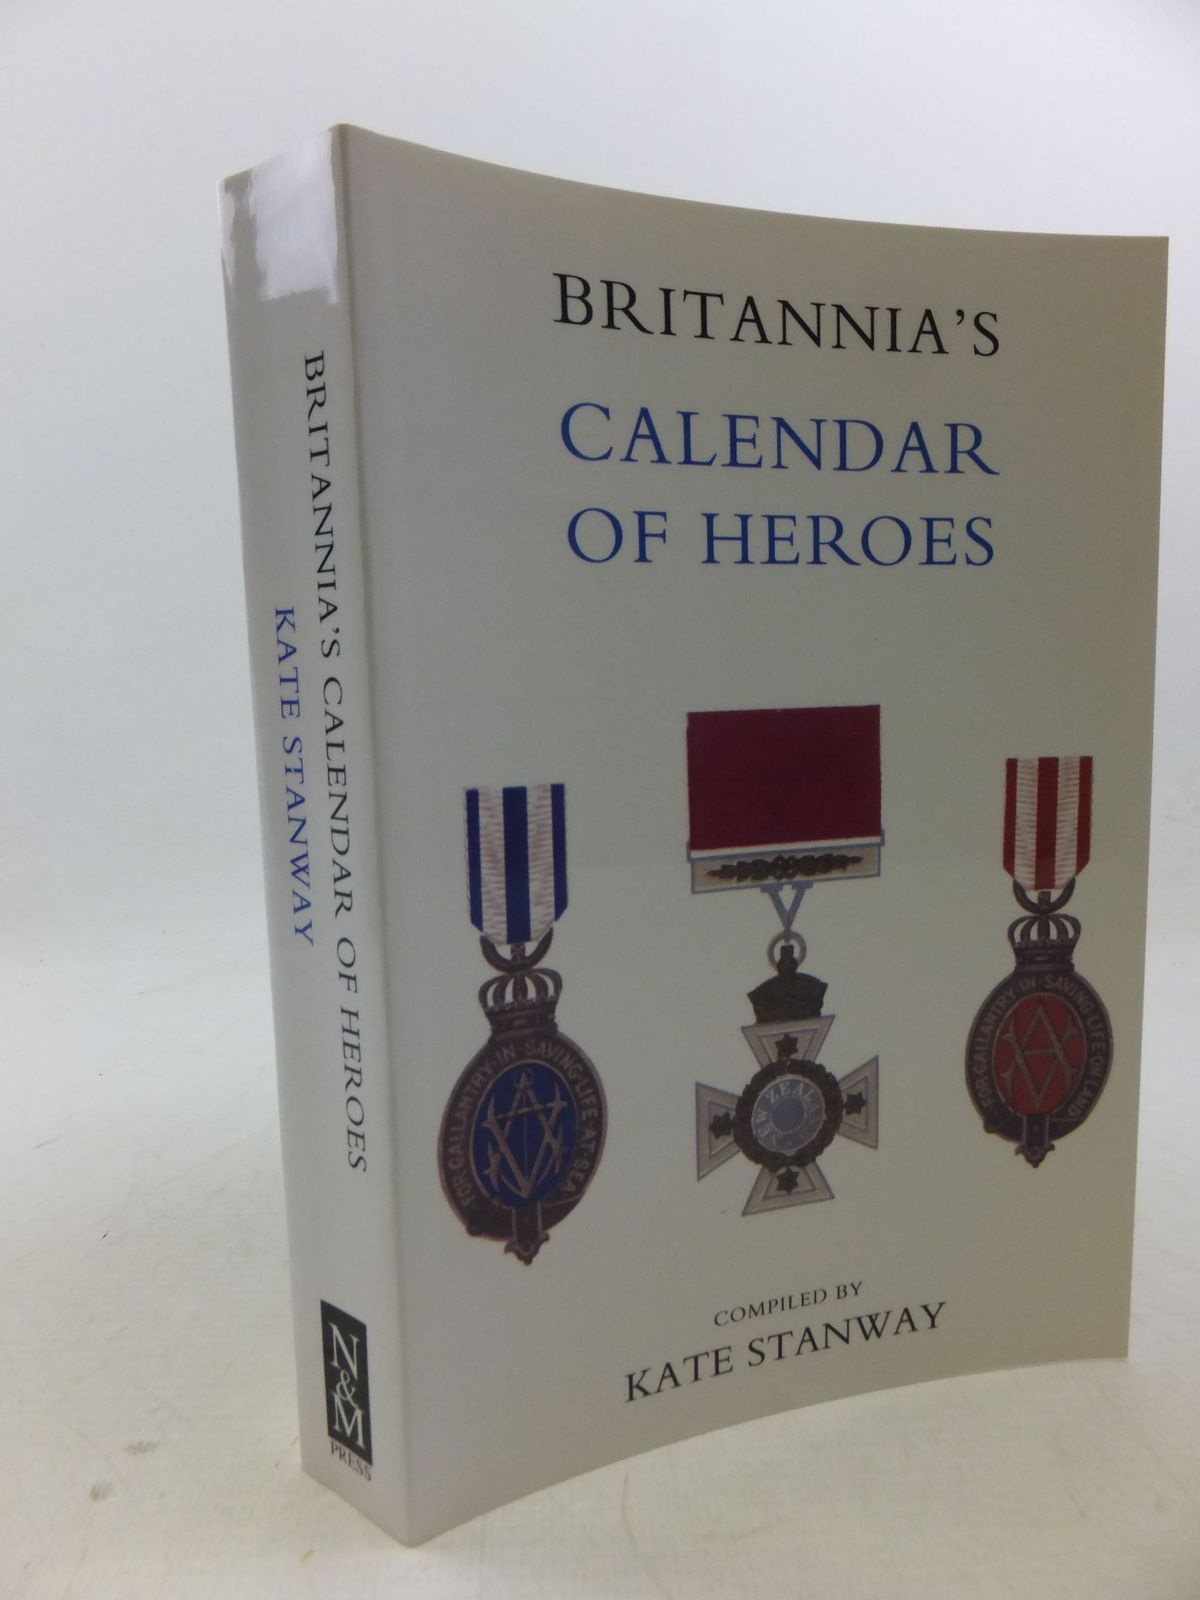 Photo of BRITANNIA'S CALENDAR OF HEROES written by Stanway, Kate published by The Naval & Military Press Ltd. (STOCK CODE: 1710582)  for sale by Stella & Rose's Books